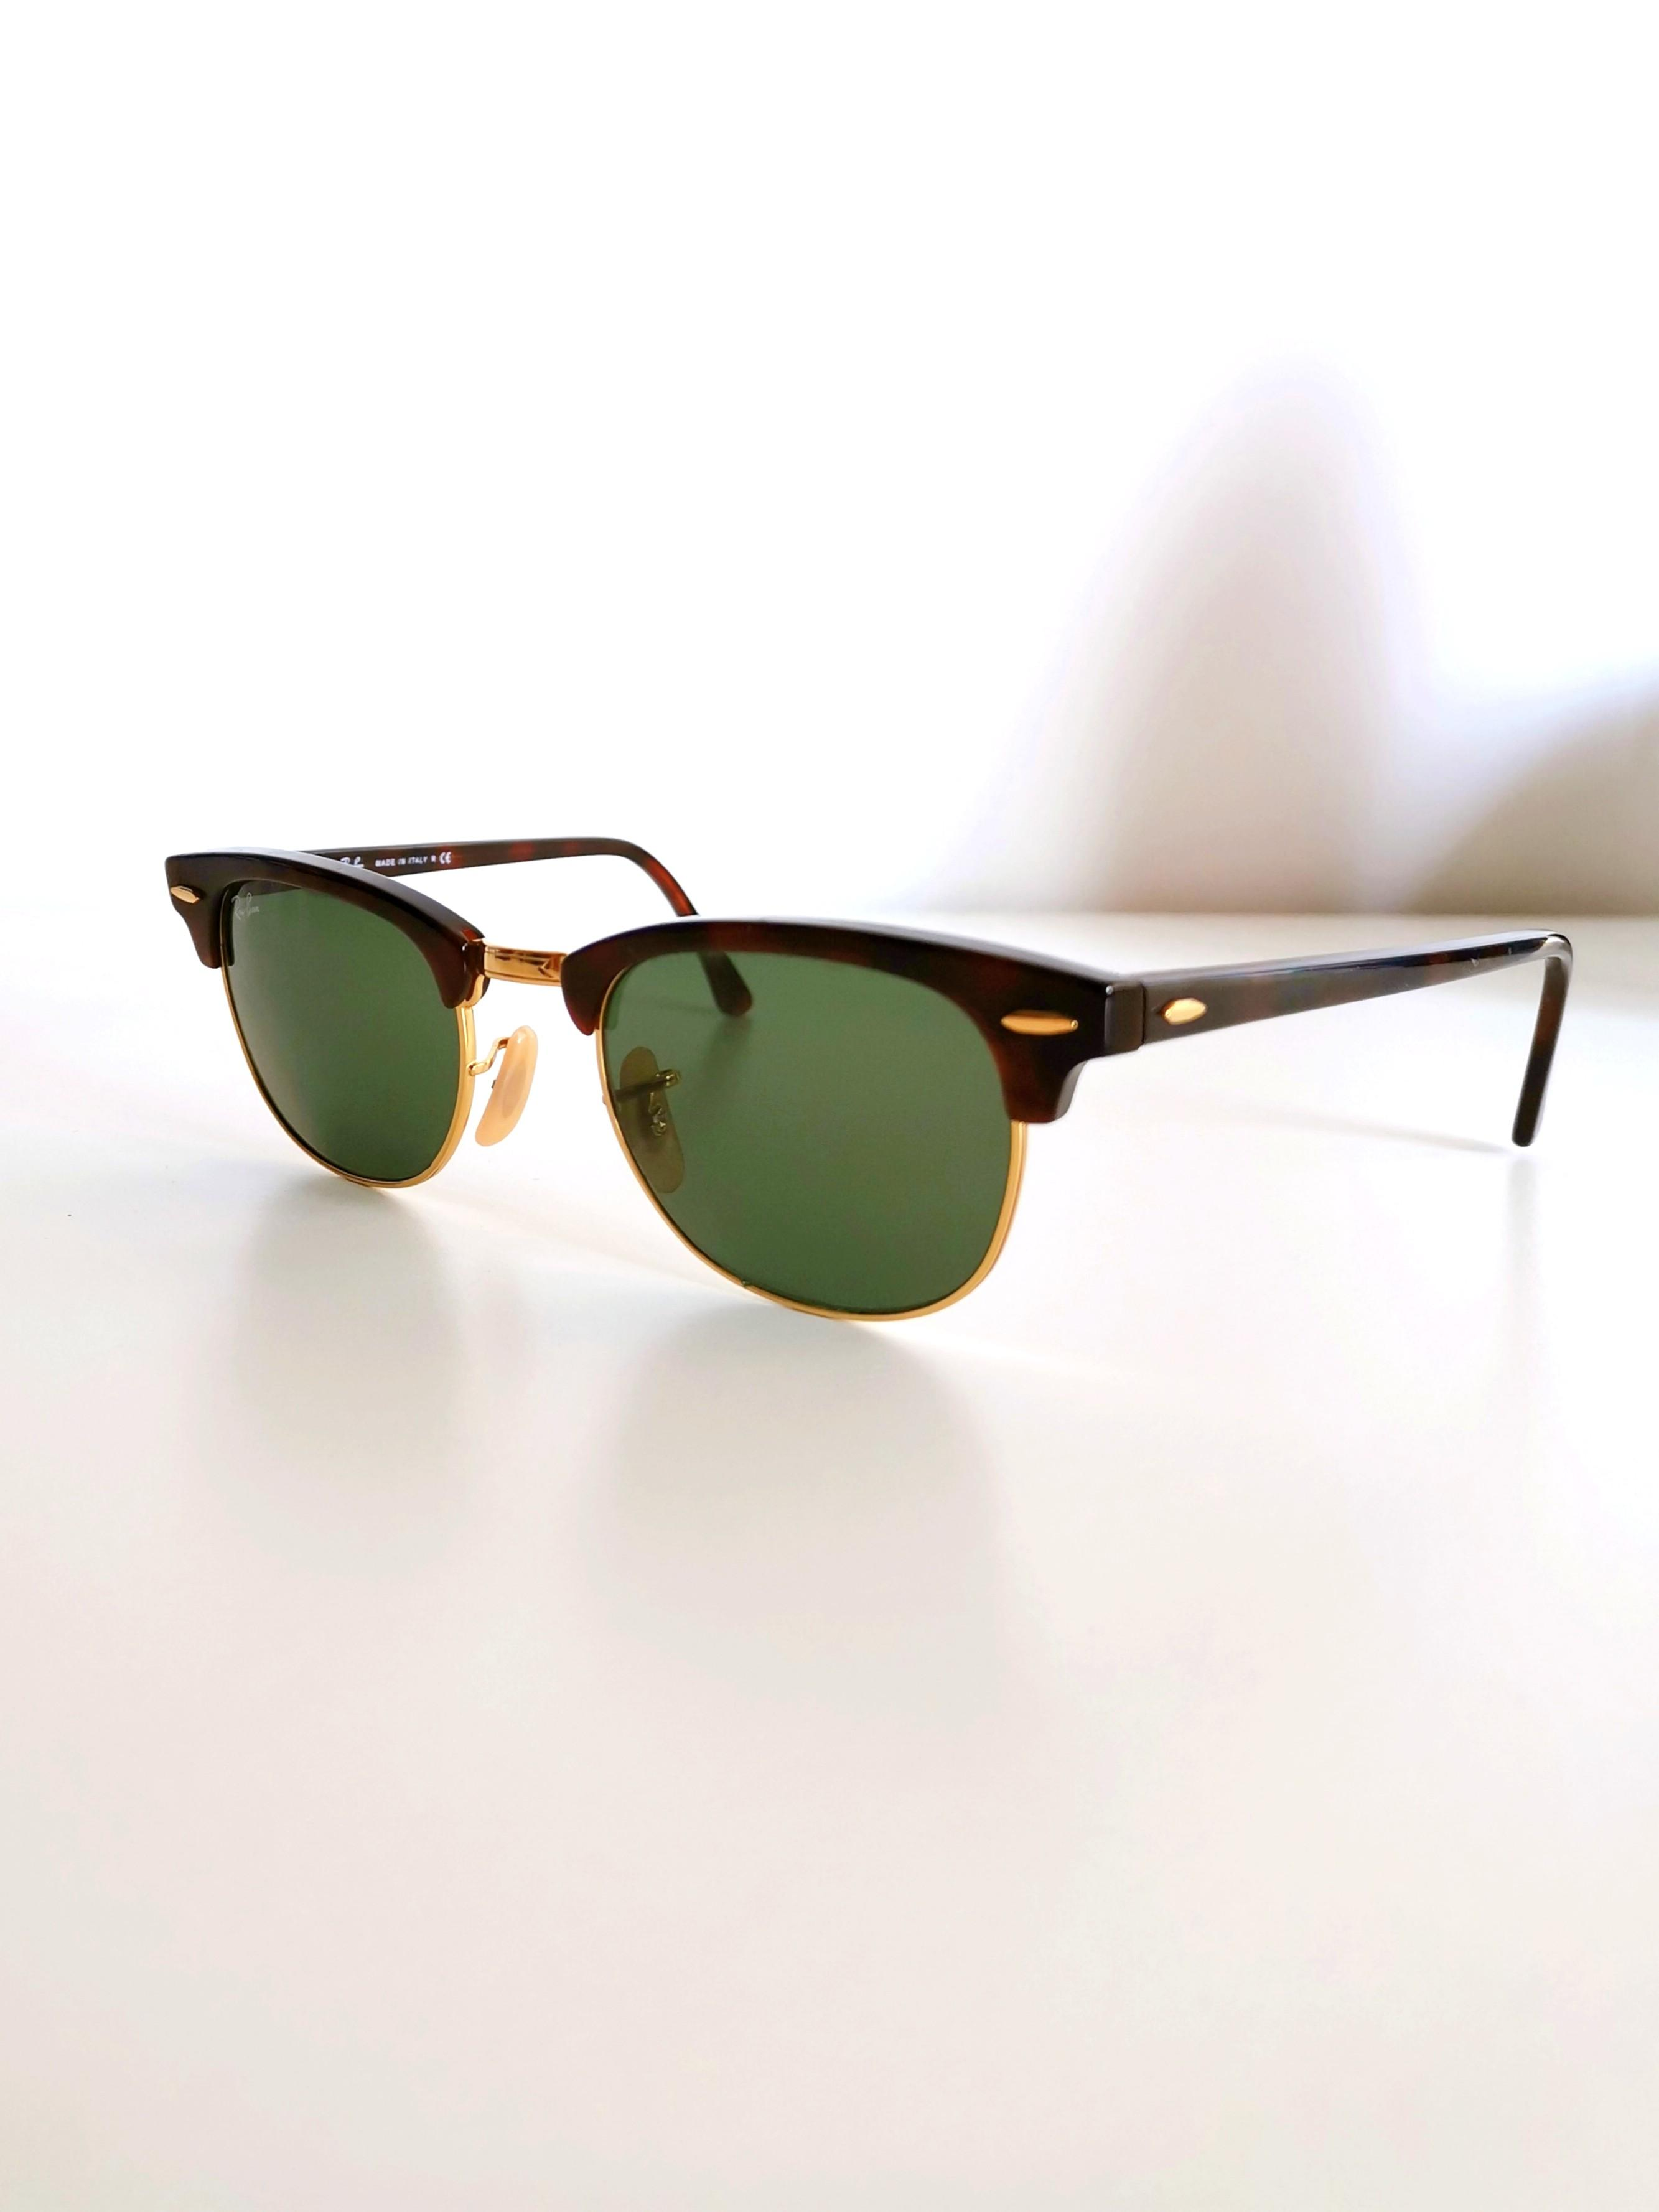 Ray-Ban Tortoise Shell Sunglasses, Clubmaster Classic